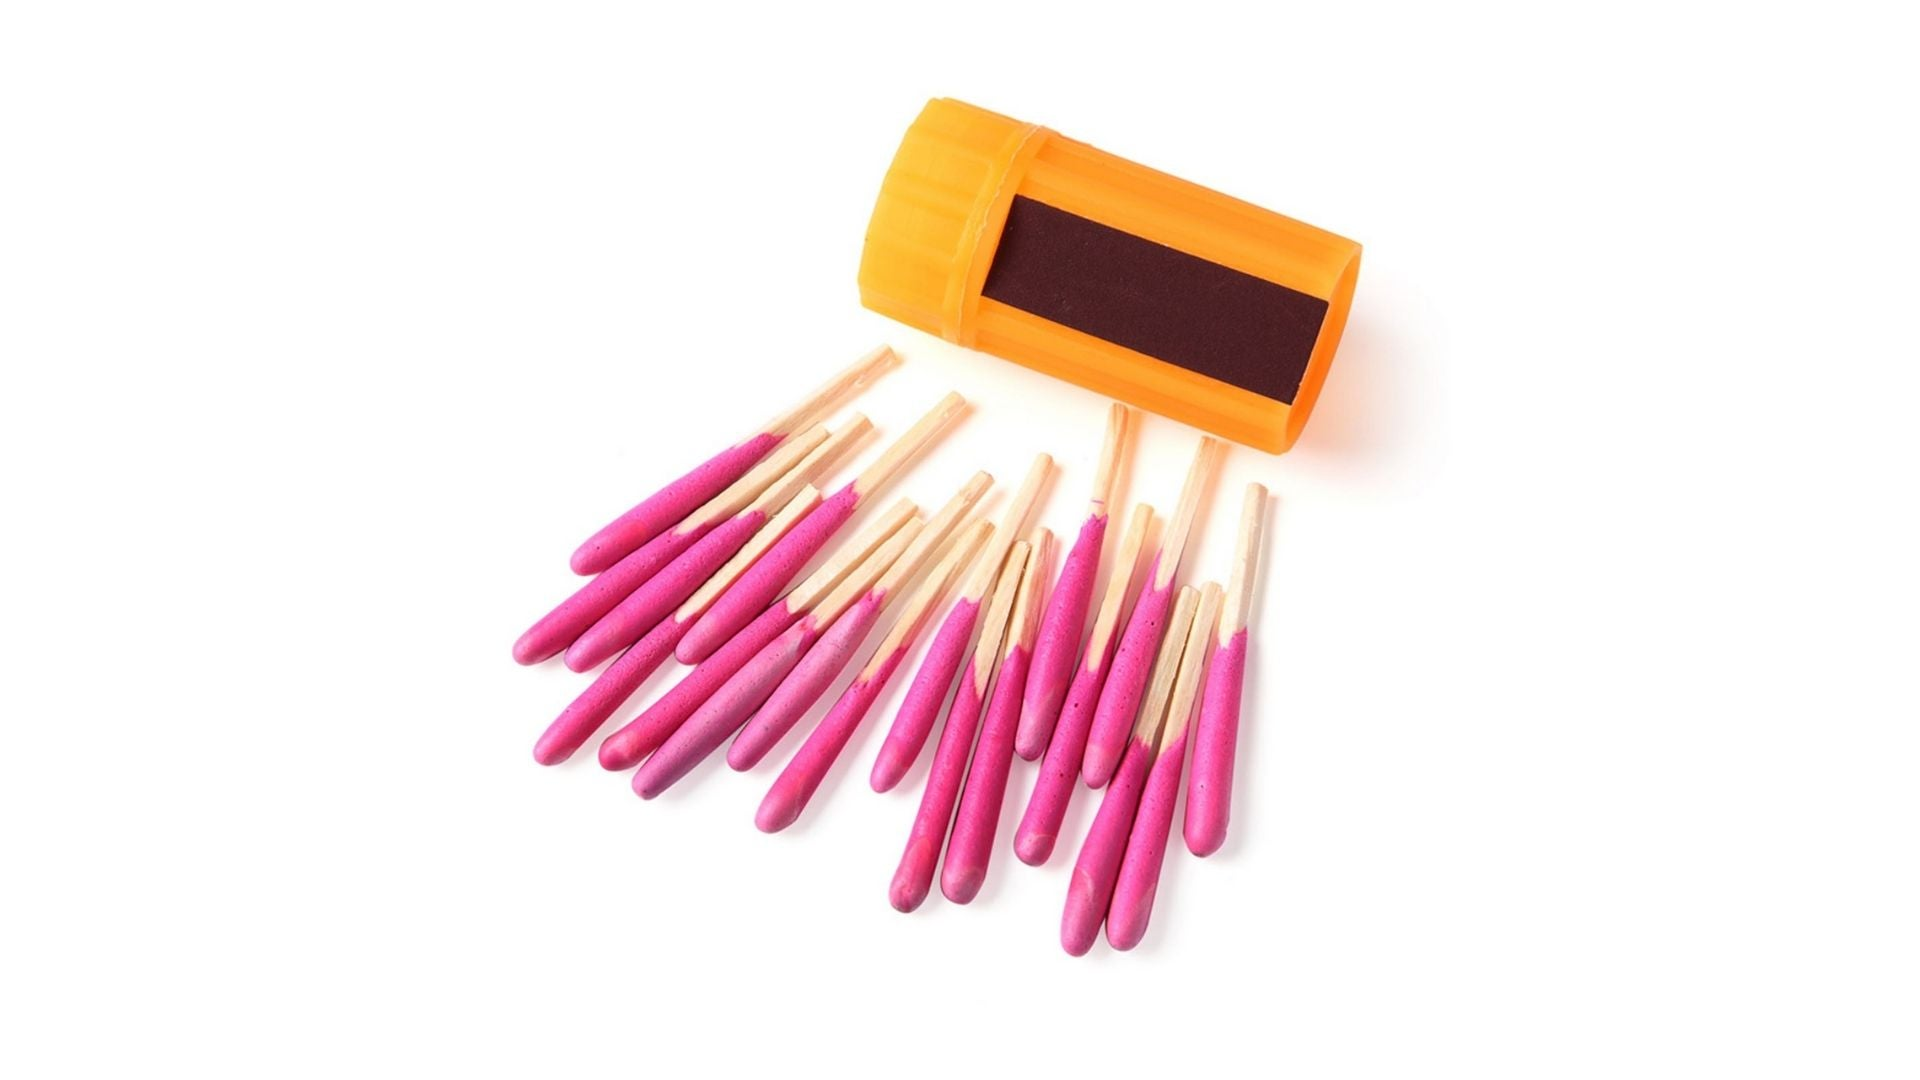 Outdoor Windproof and Waterproof Matches